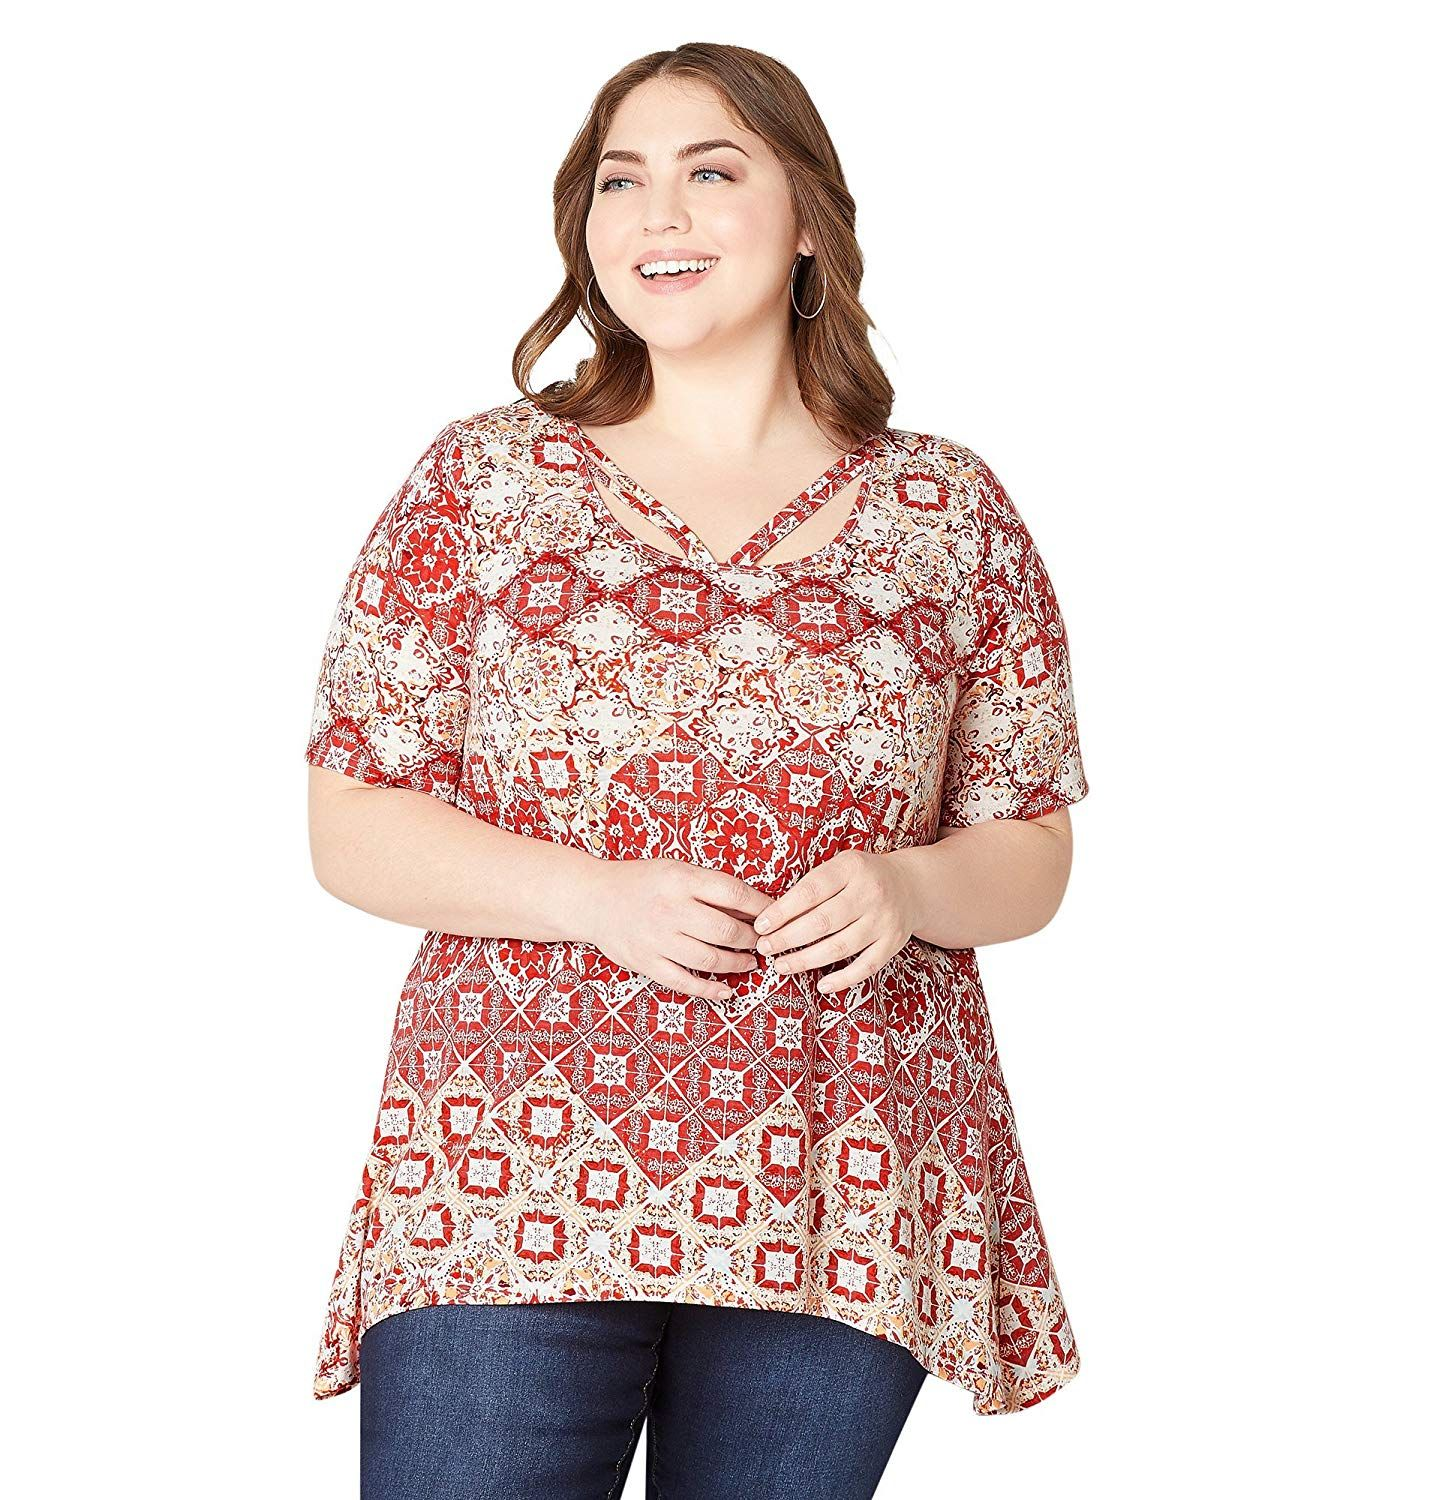 aeda9fa618c9f7 Avenue Women s Geo Medallion Sharkbite Top. This trendy top has a  curve-complimenting sharkbite hem and trendy caged details at the neckline.